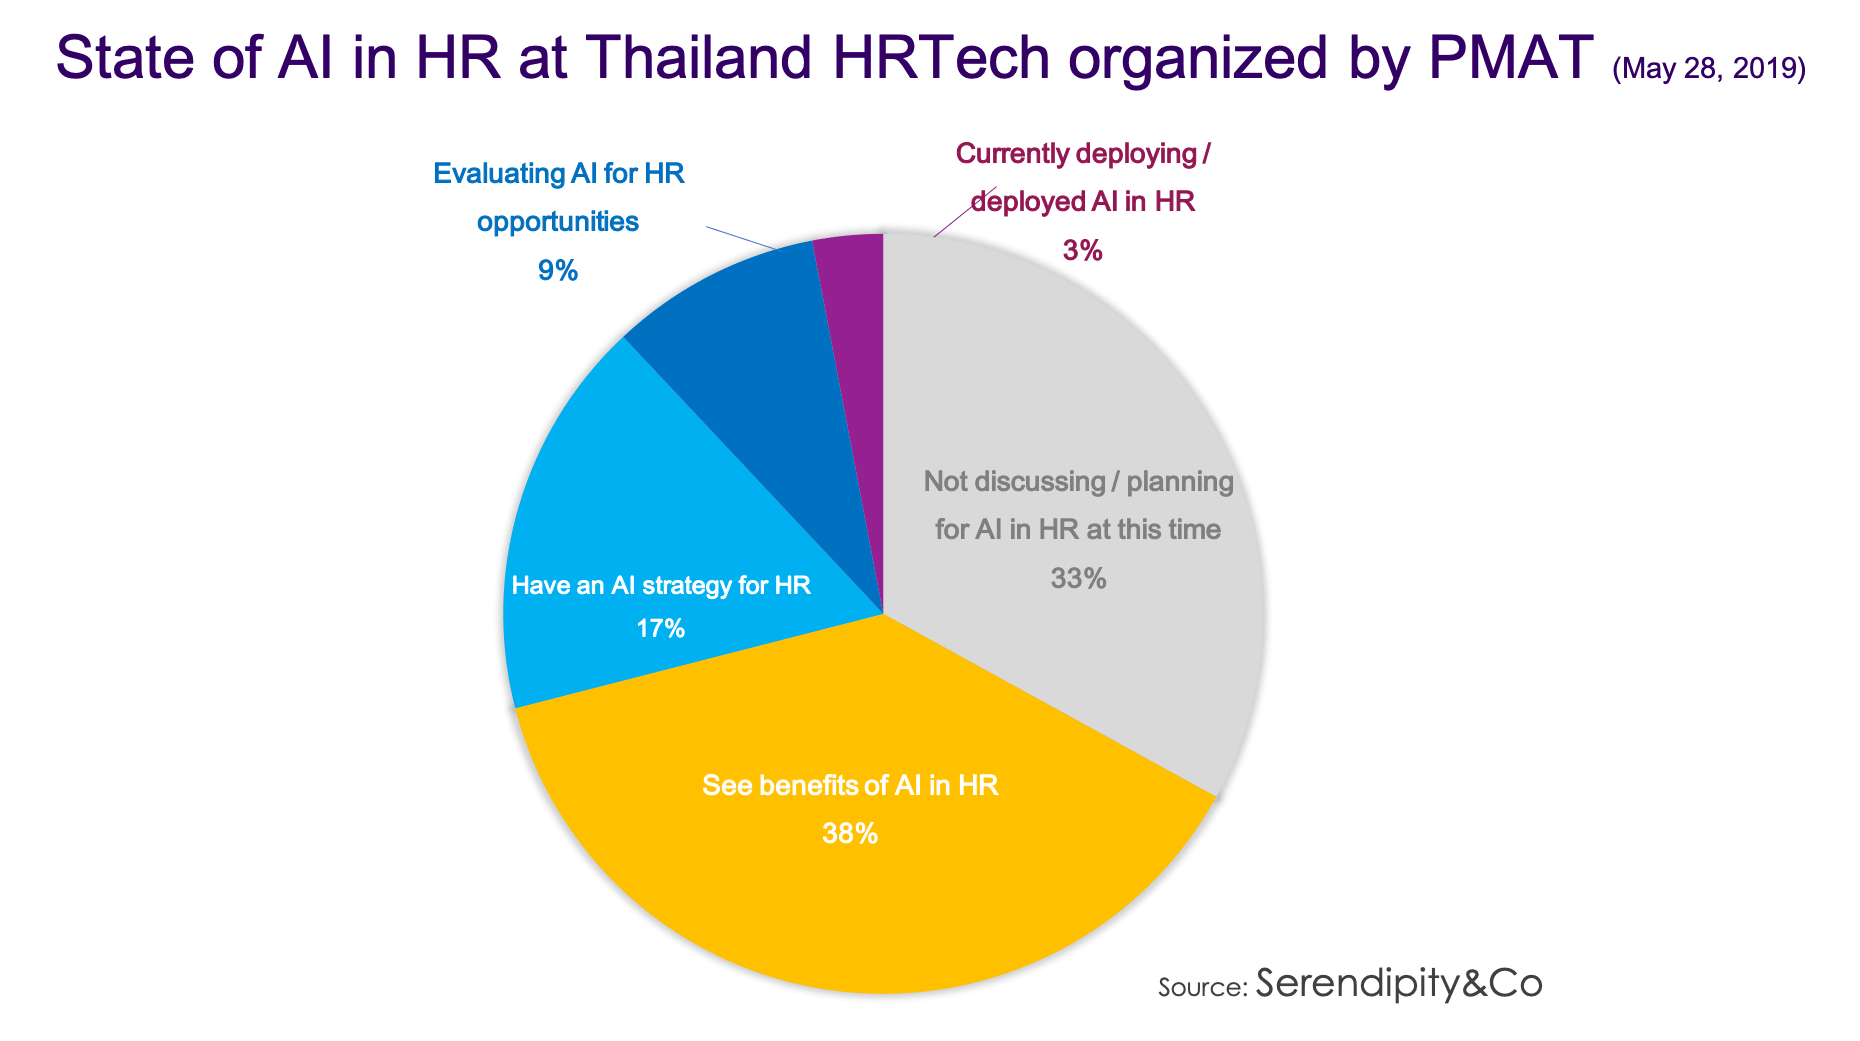 State of AI in HR among Thai companies